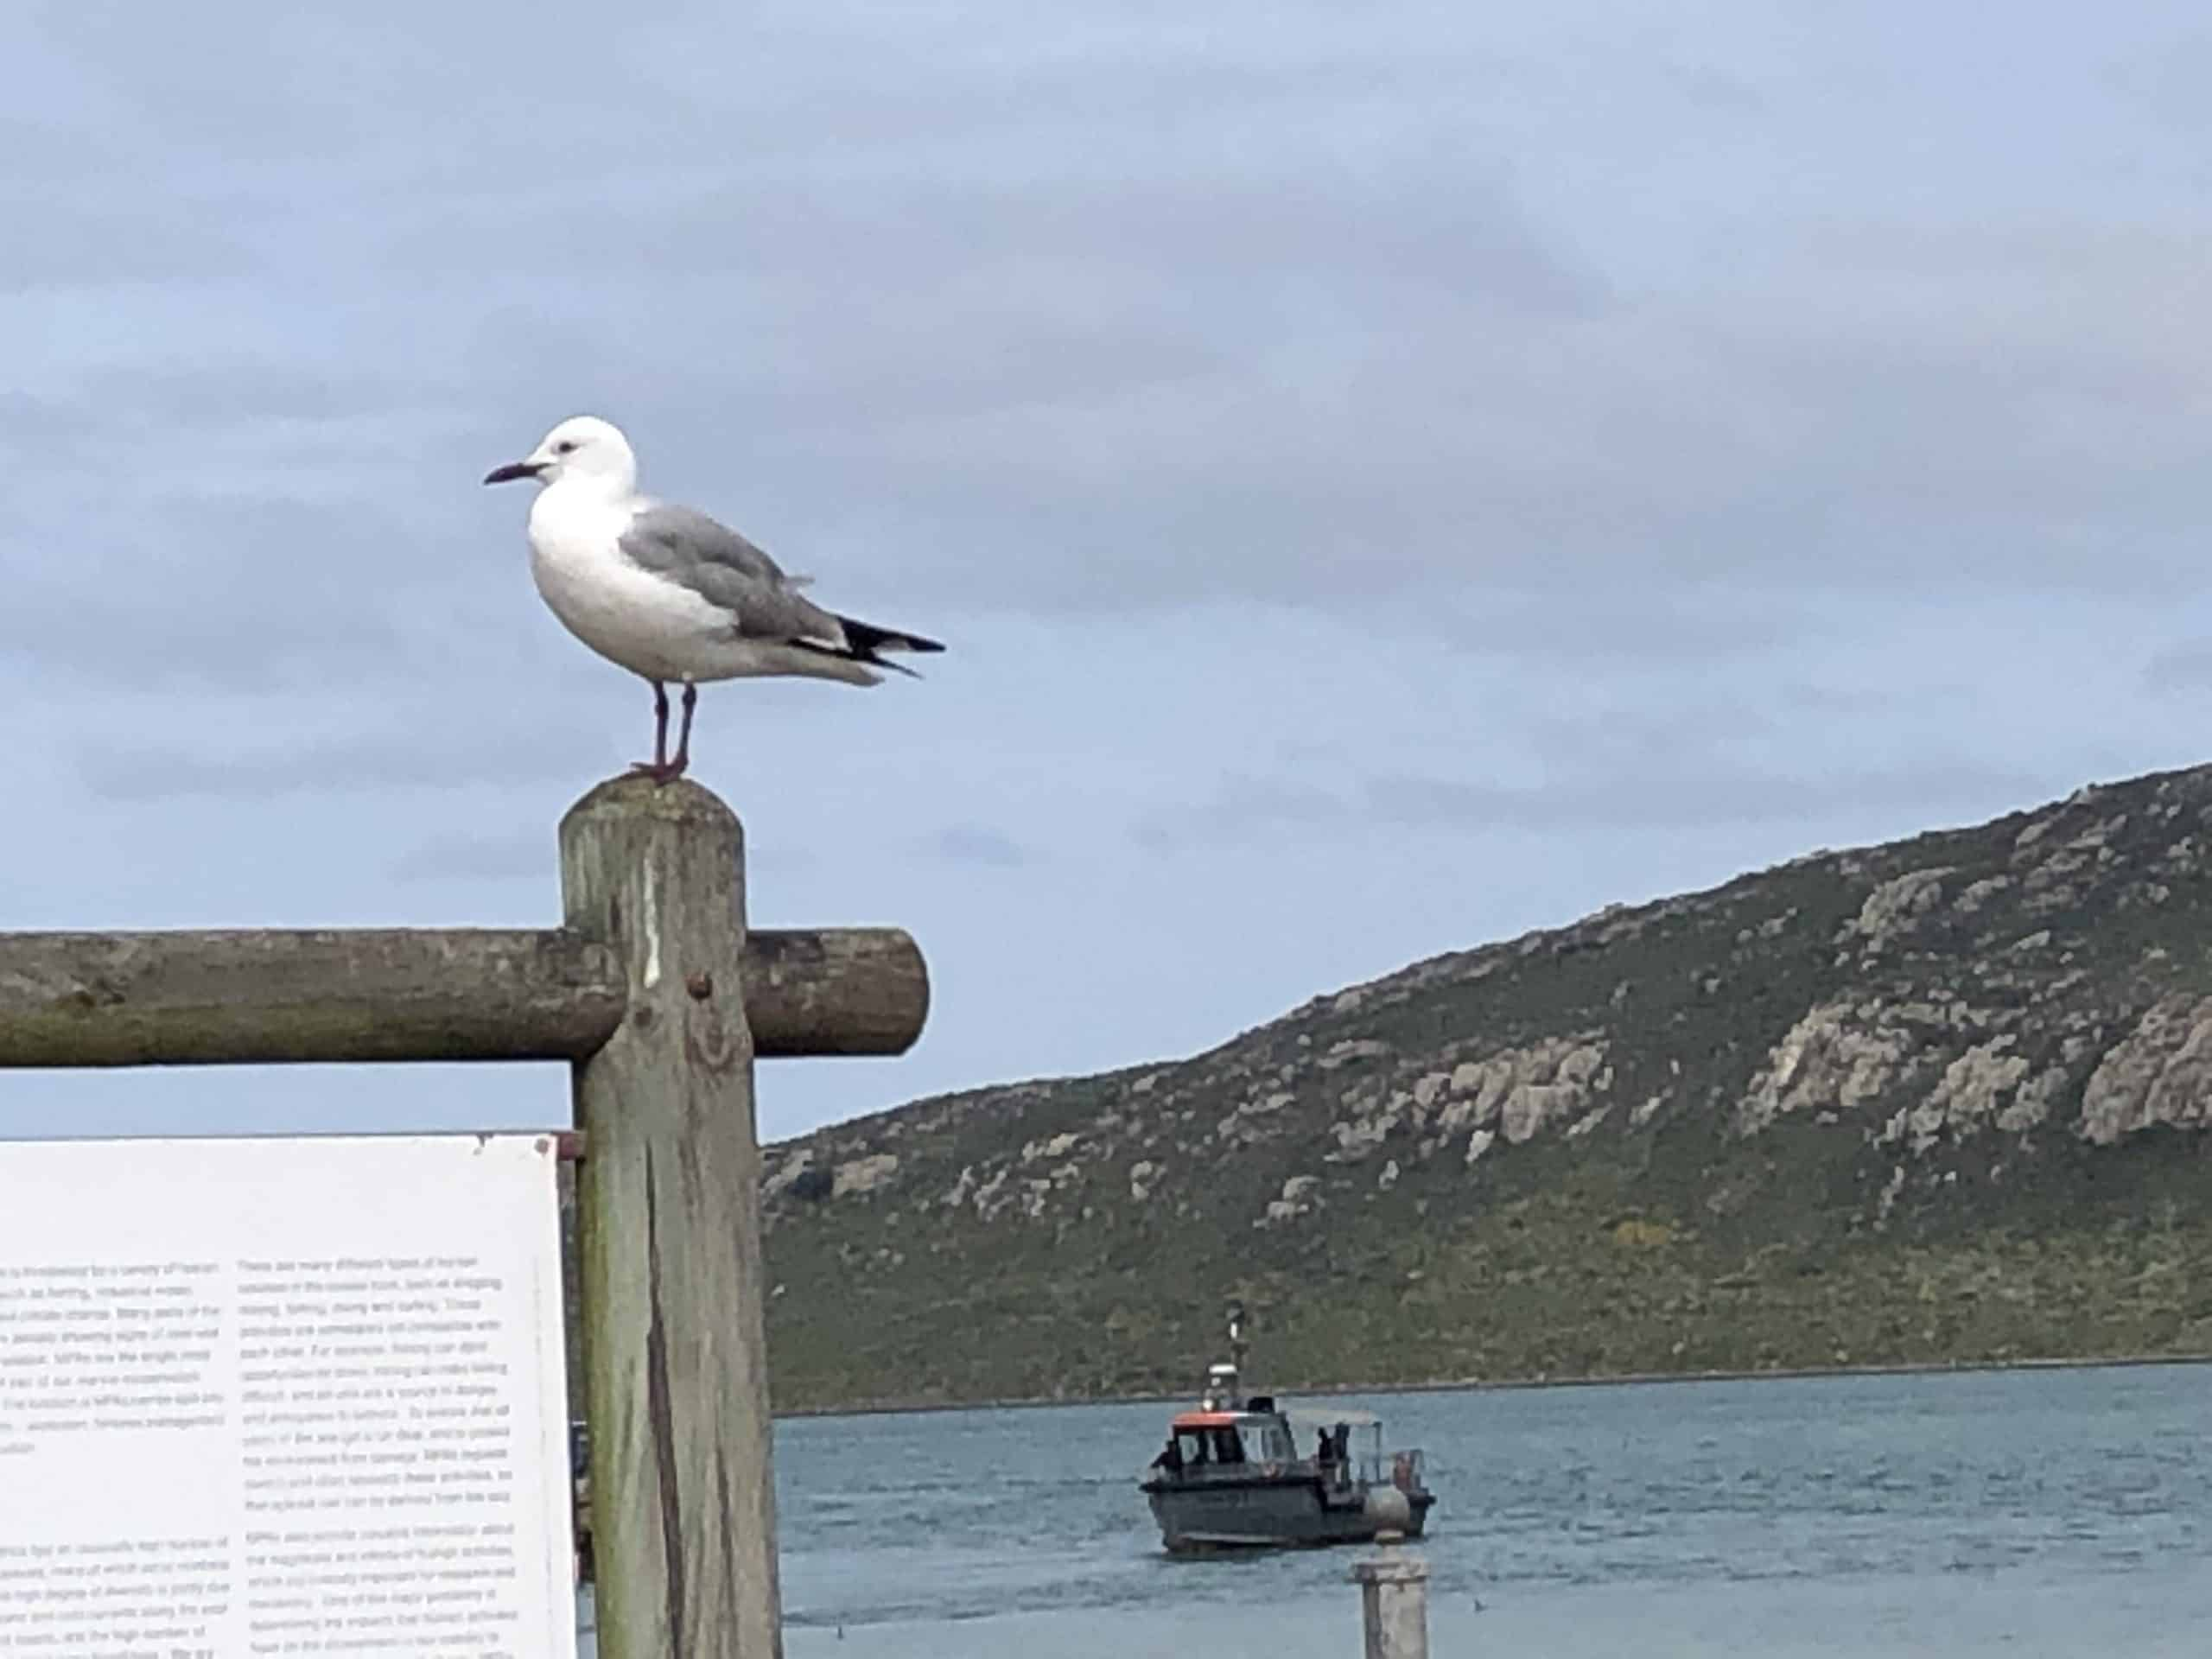 Cycling along Langebaan lagoon on the West Coast- known for its bird life